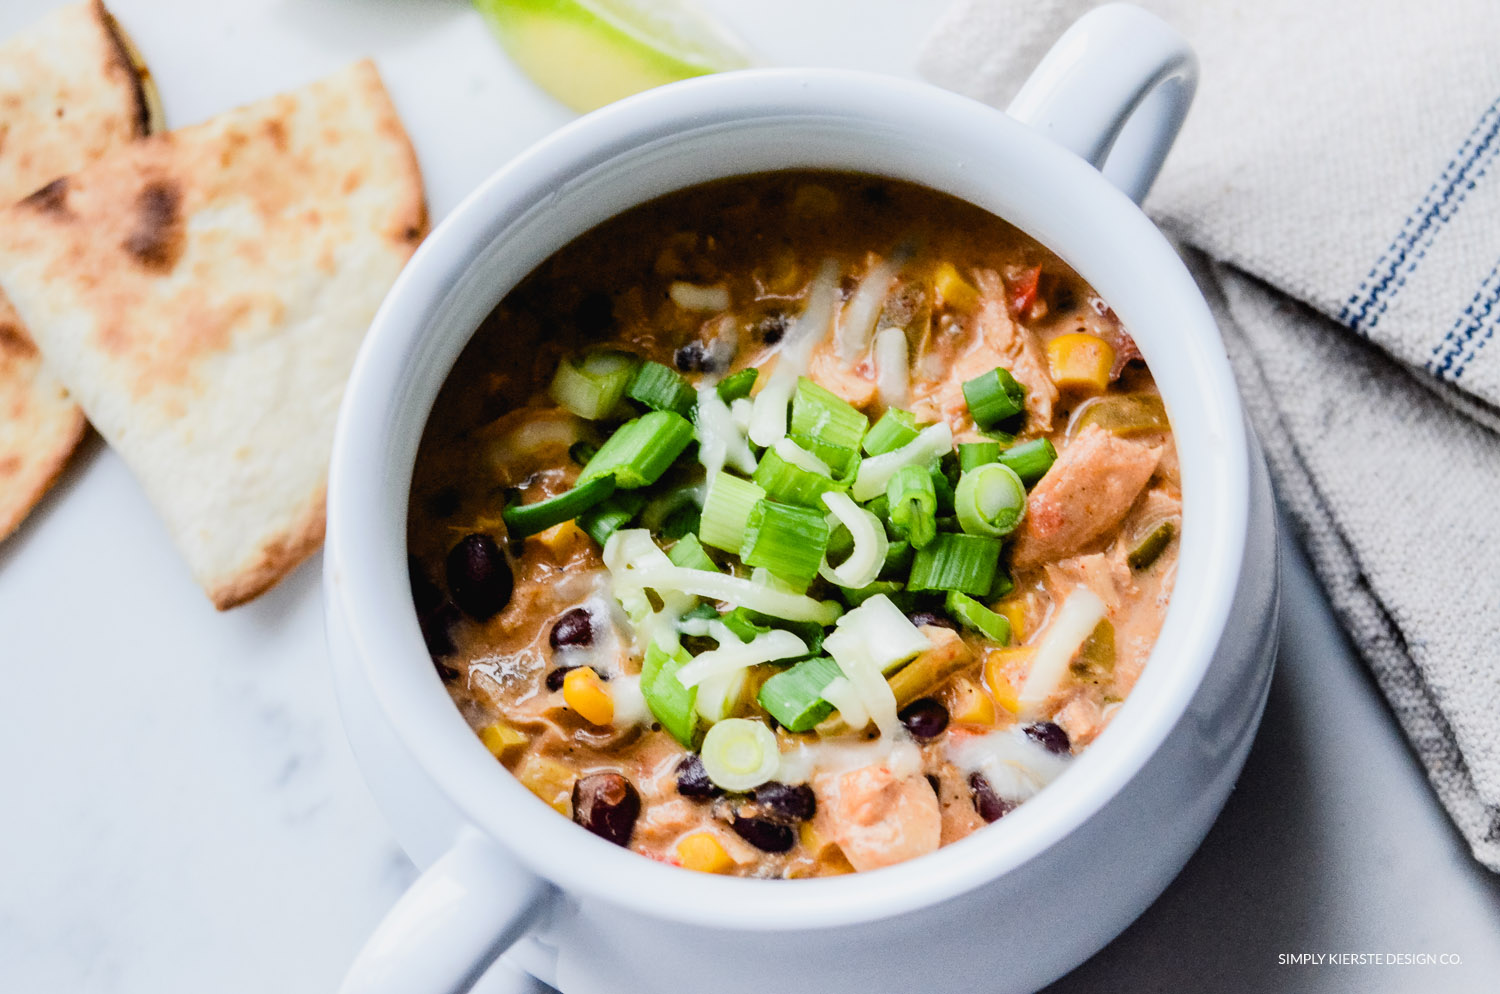 Crockpot Mexican Chicken Soup | simplykierste.com #soup #crockpotsoup #crockpotrecipes #slowcookerrecipes